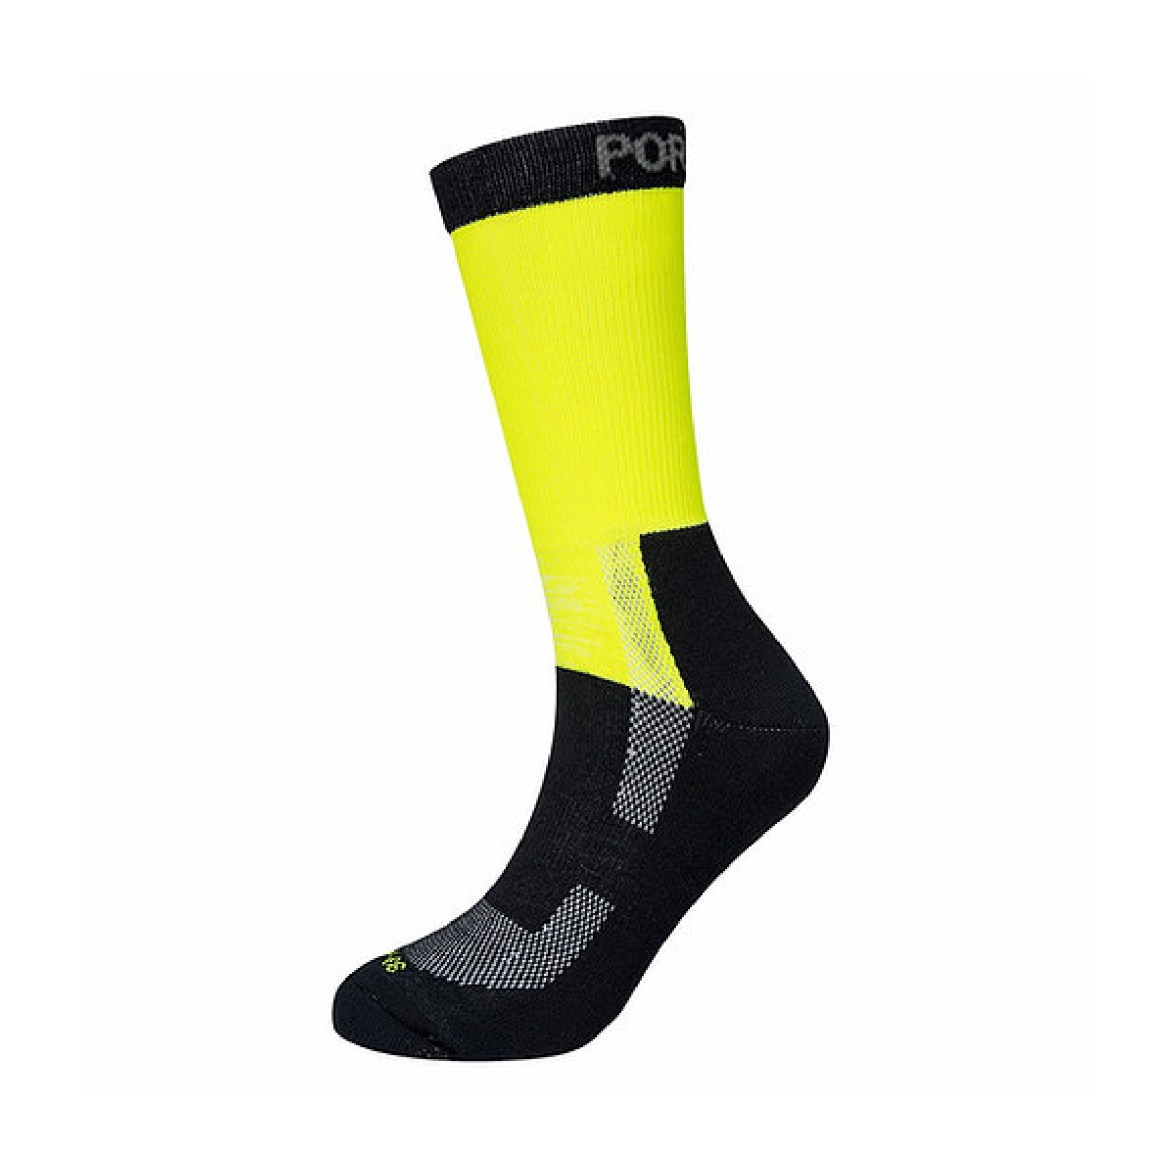 Redrok Workwear Centre Plymouth Hi-Visibility Sock - Yellow